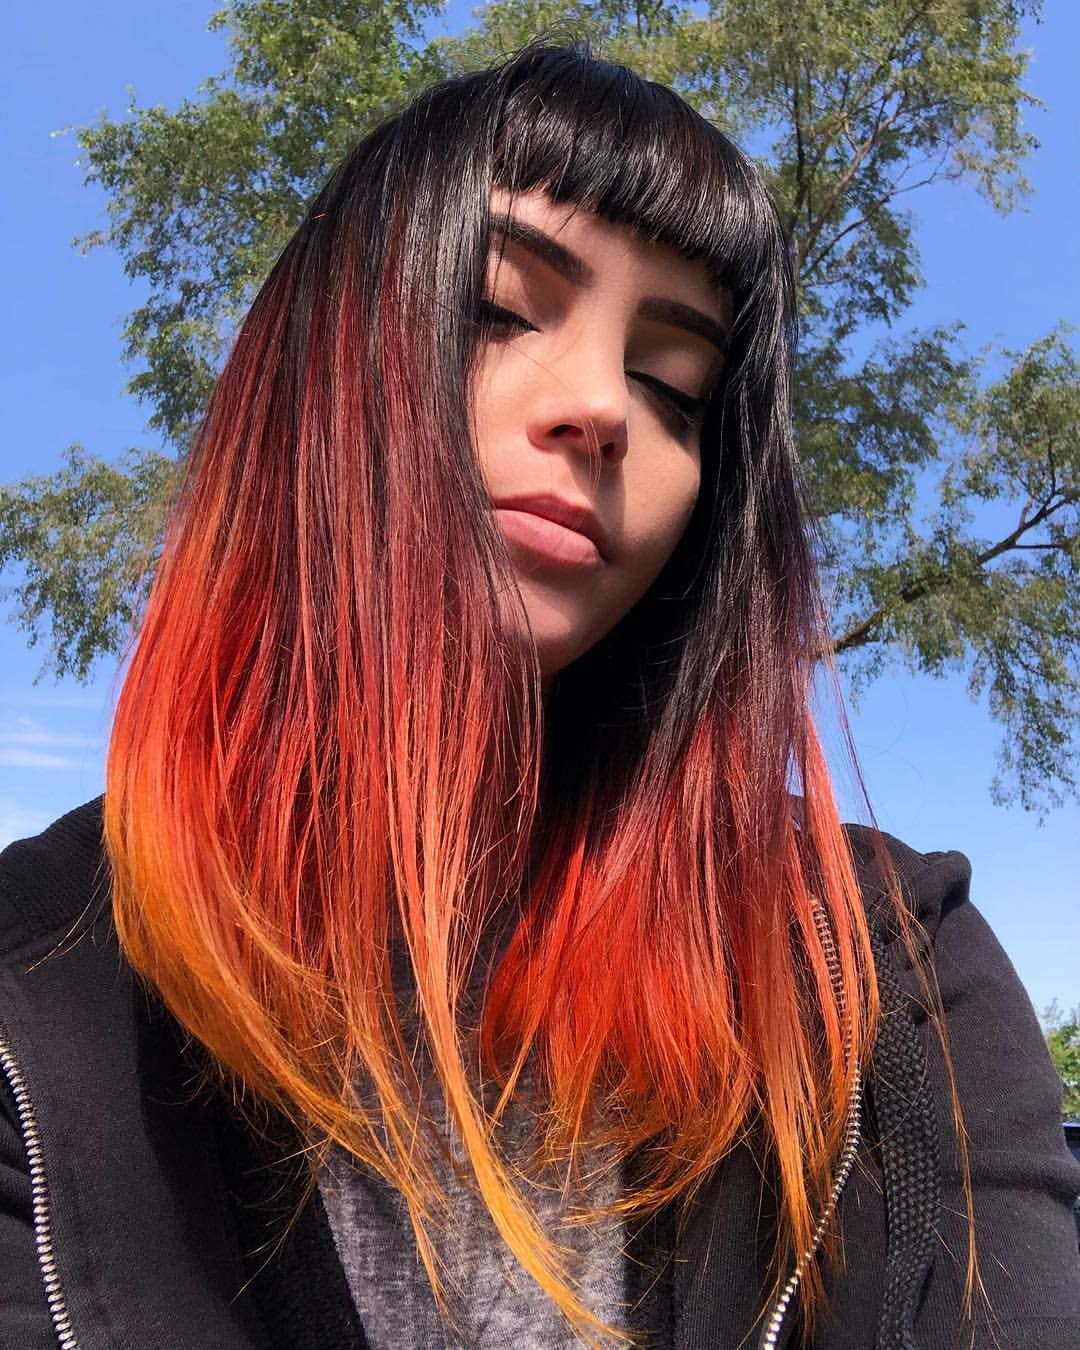 F I R E O M B R E Arctic Fox Hair Color Slightlyanime Is A Glowing Ember In The Sky Arcticfoxhaircolor Sunsetorange Hair Styles Fire Hair Dyed Hair